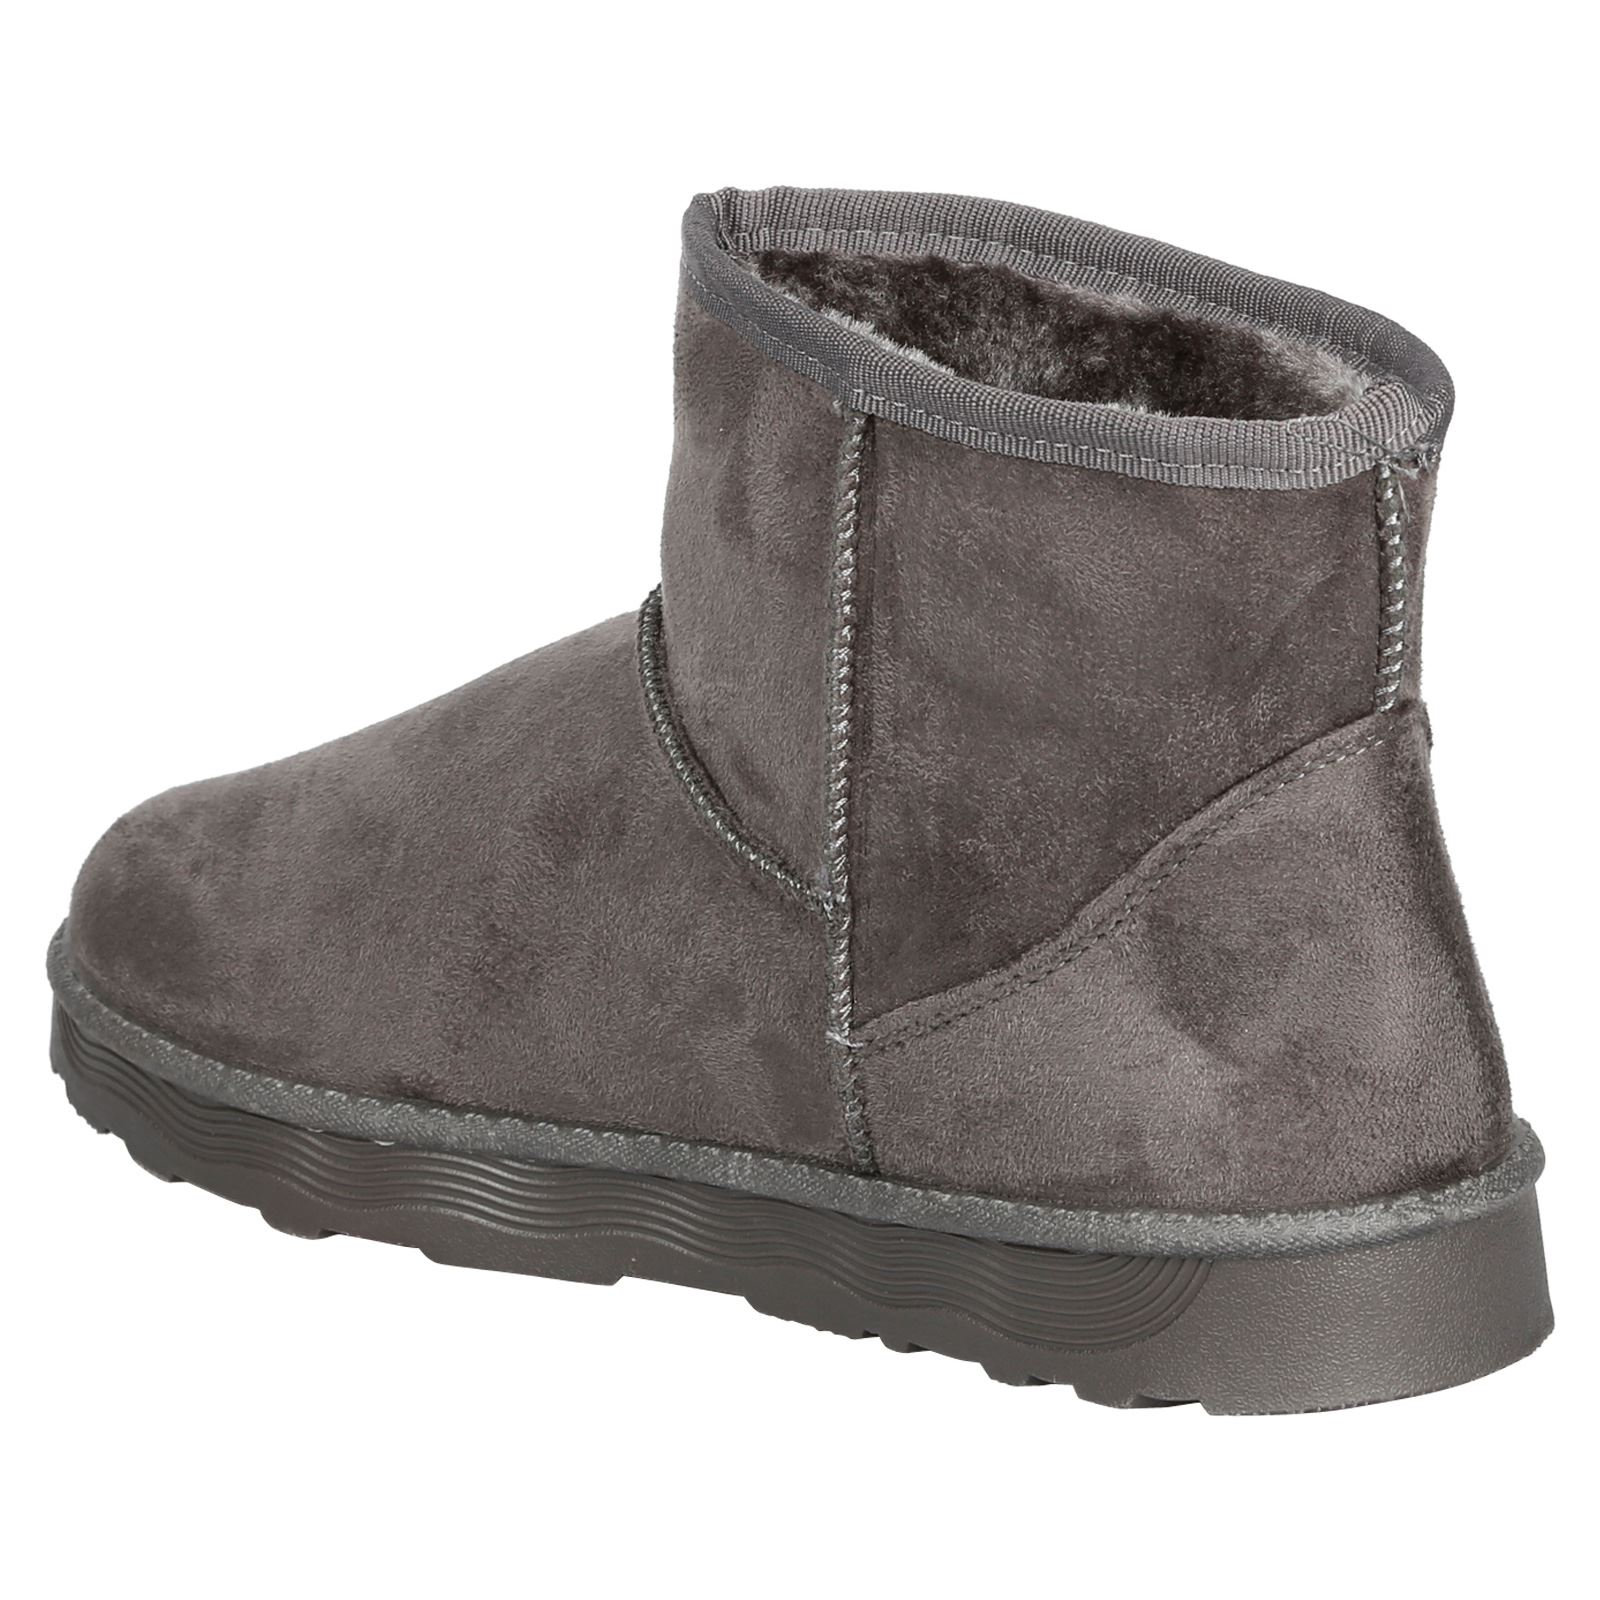 Naomi-Womens-Platfrom-Flat-Fur-Lined-Pull-On-Snug-Snow-Boots-Casual-Ladies-Size thumbnail 13